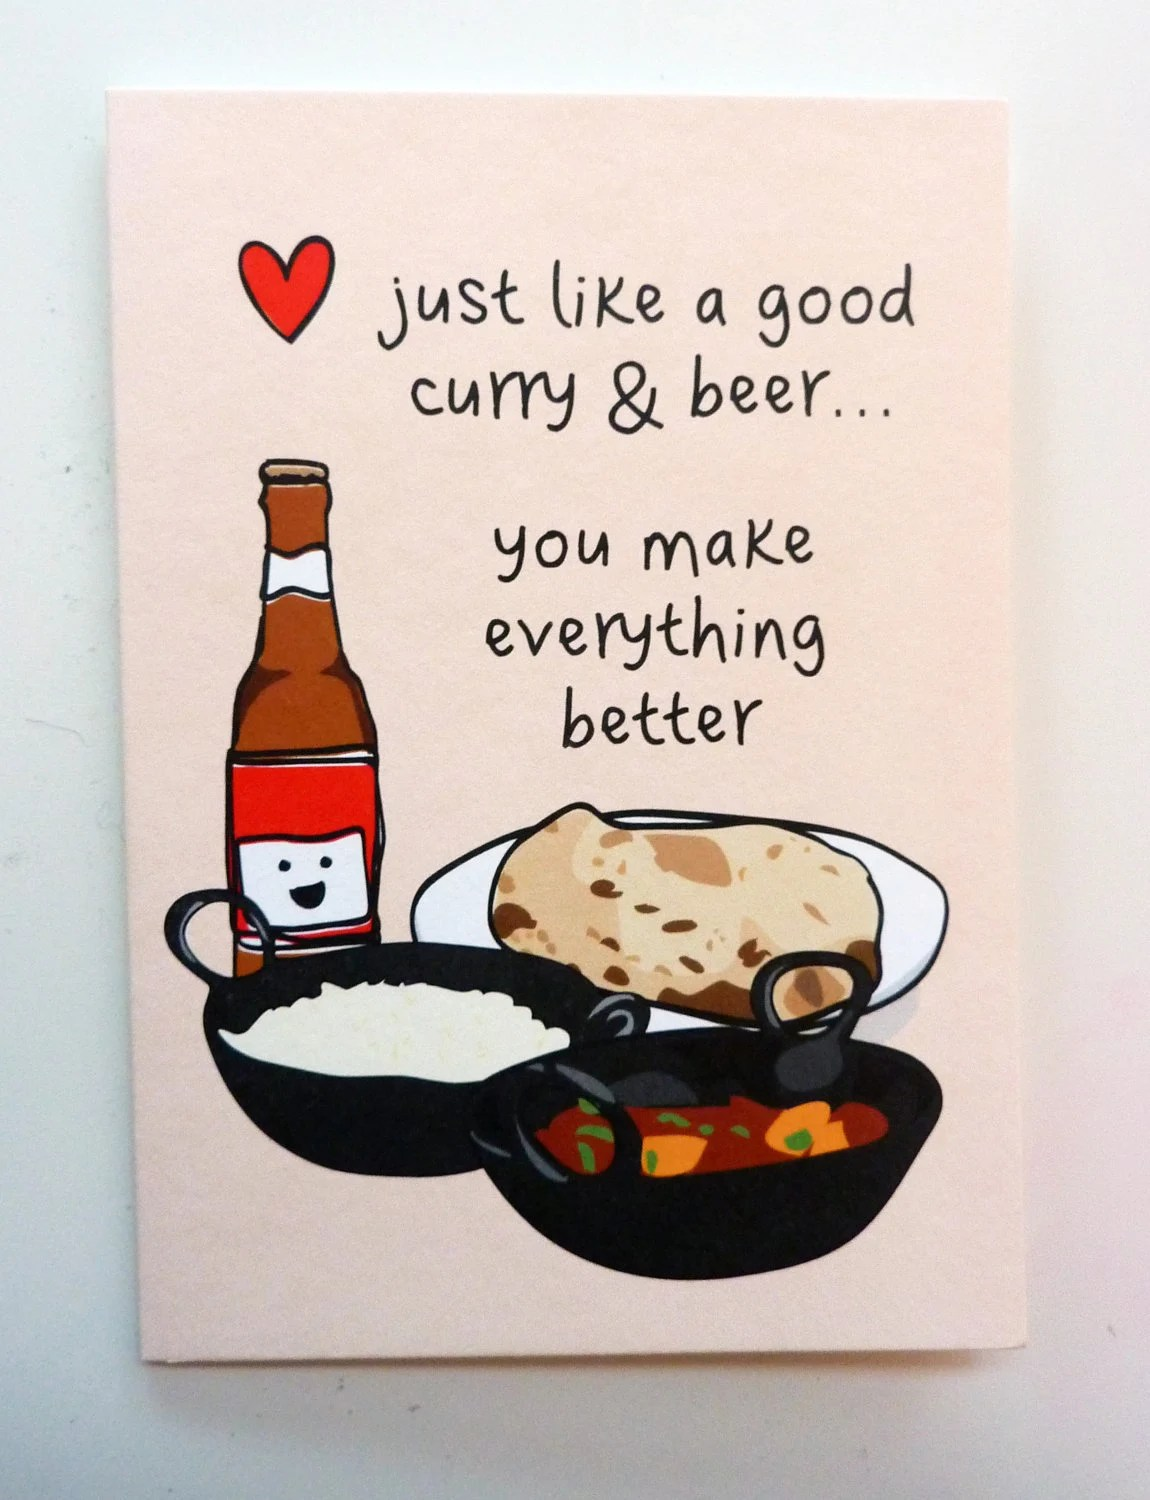 Funny Indian Food Inspired Greetings Card Curry Amp Beer